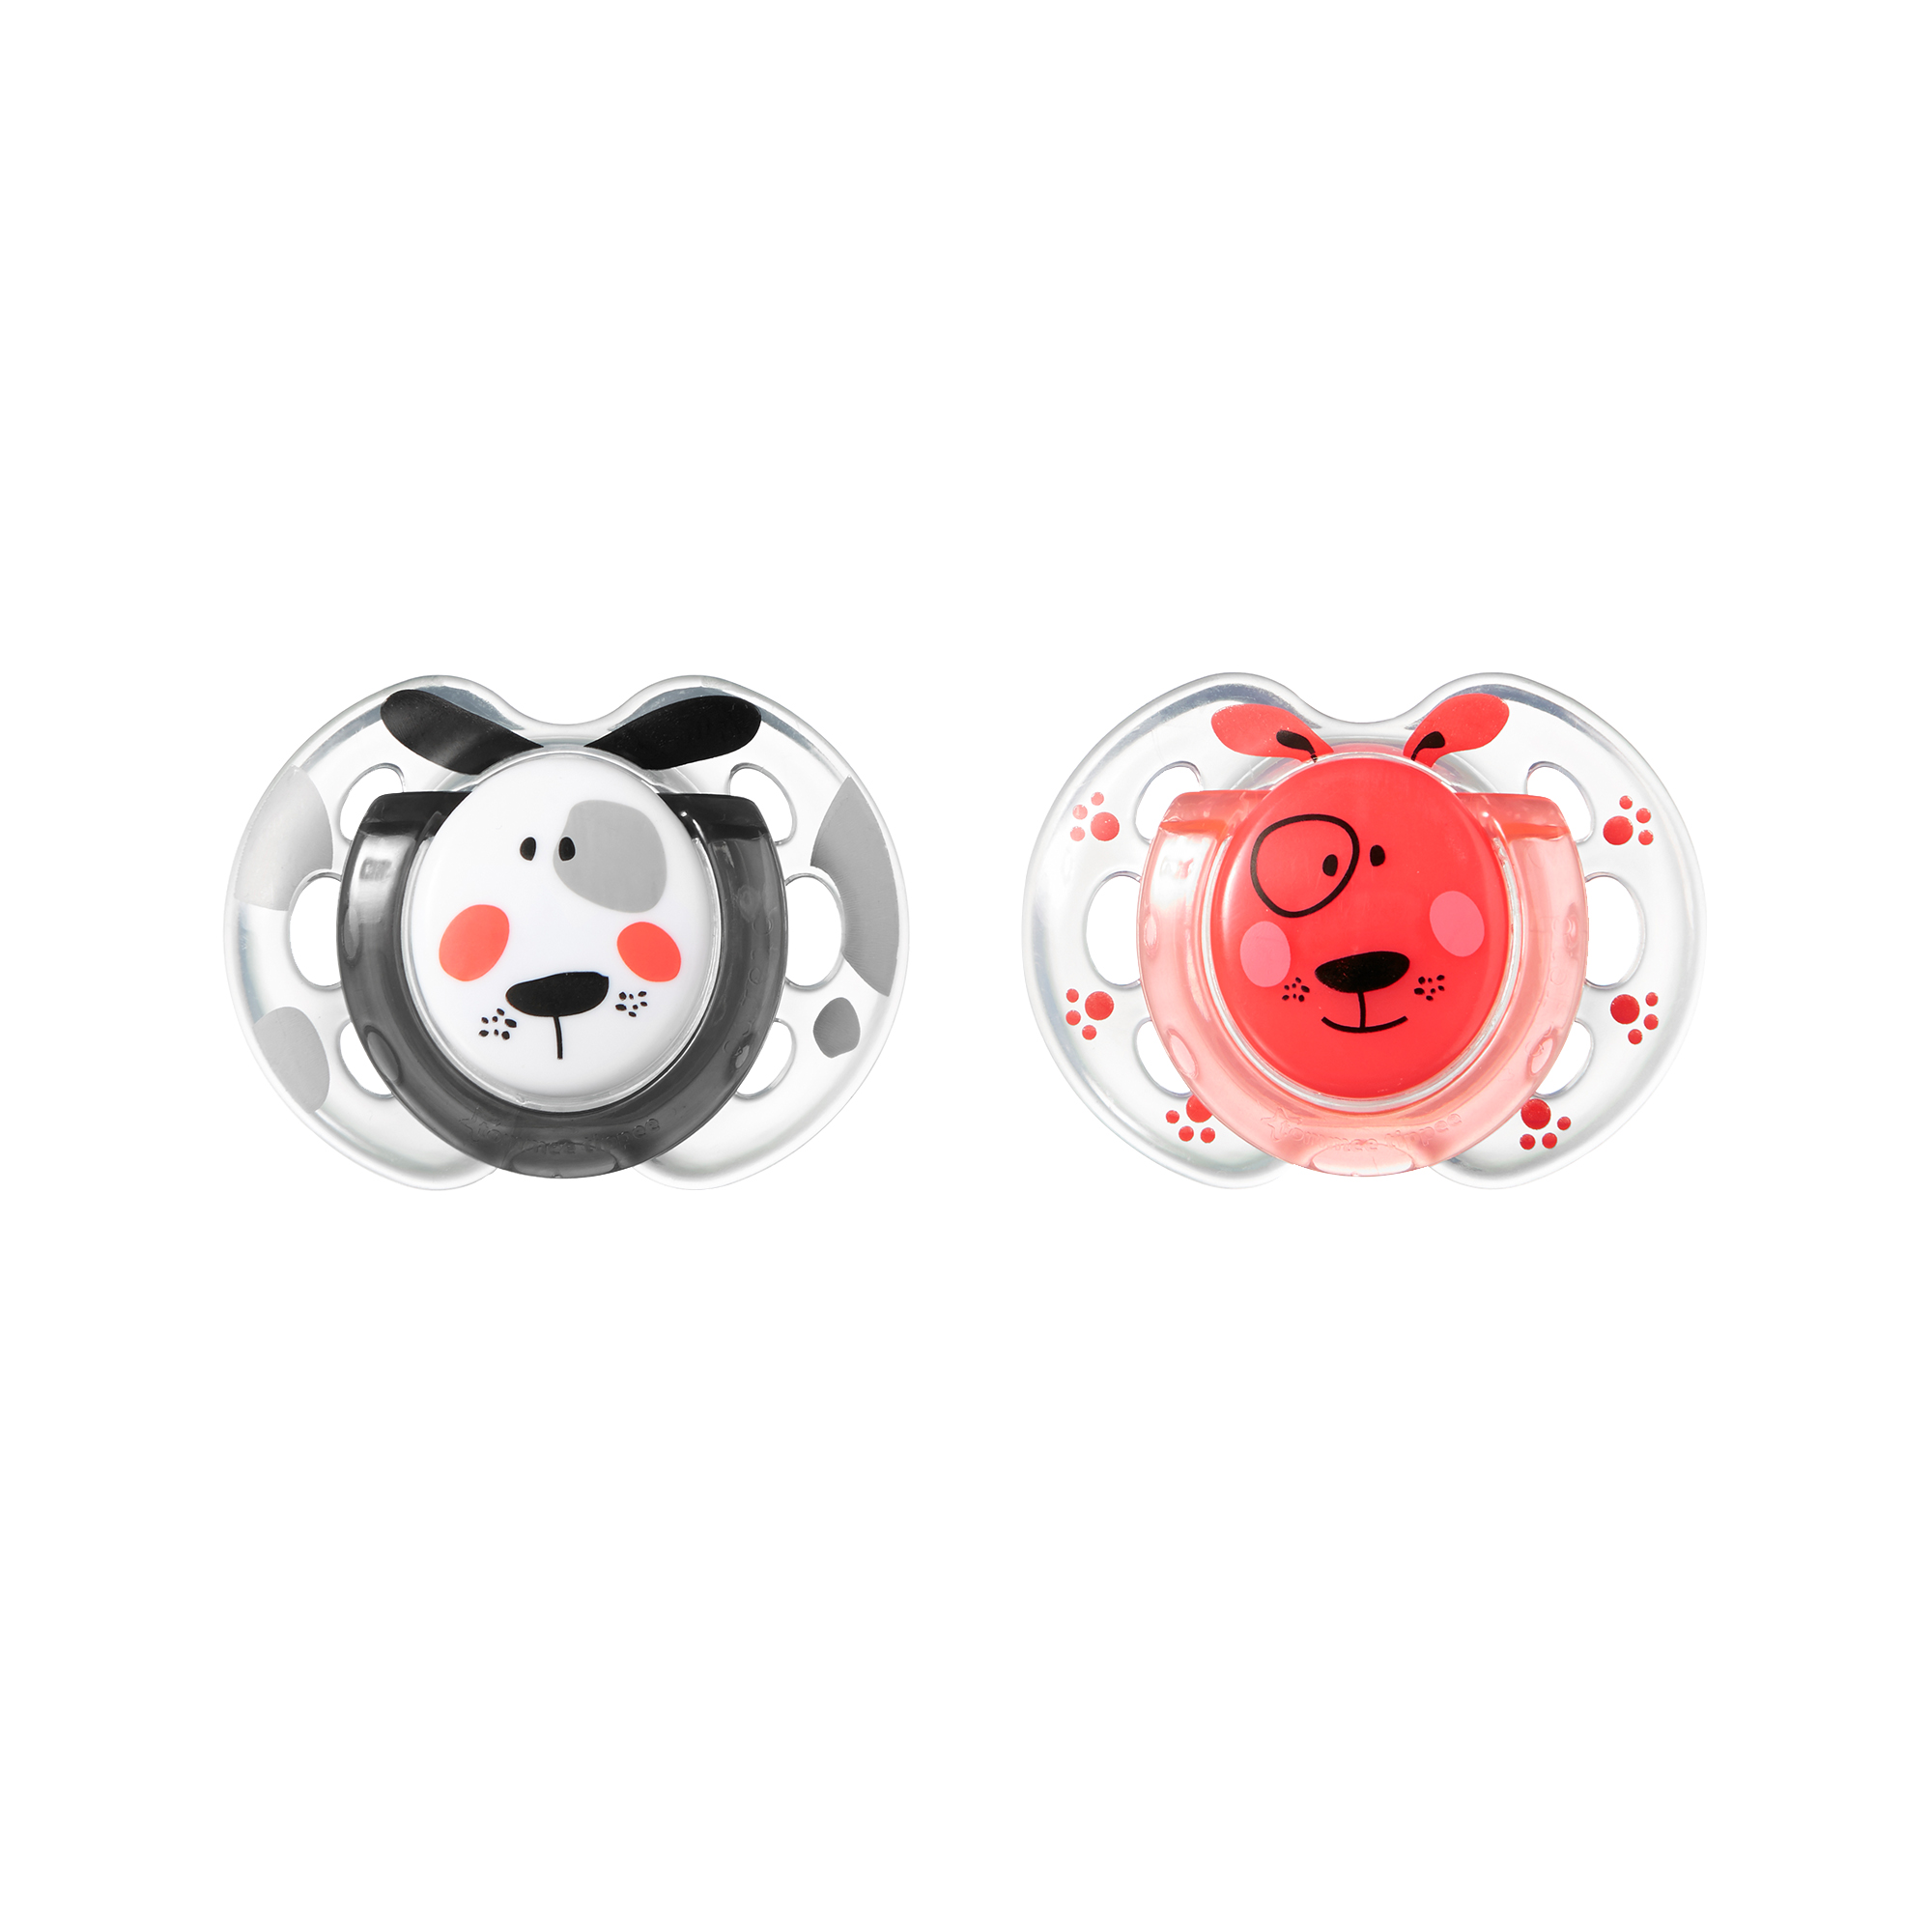 Tommee Tippee Fun Style Pacifier, 0-6 mo., 2 pk. Colors, Characters, Theme May Vary by Tommee Tippee